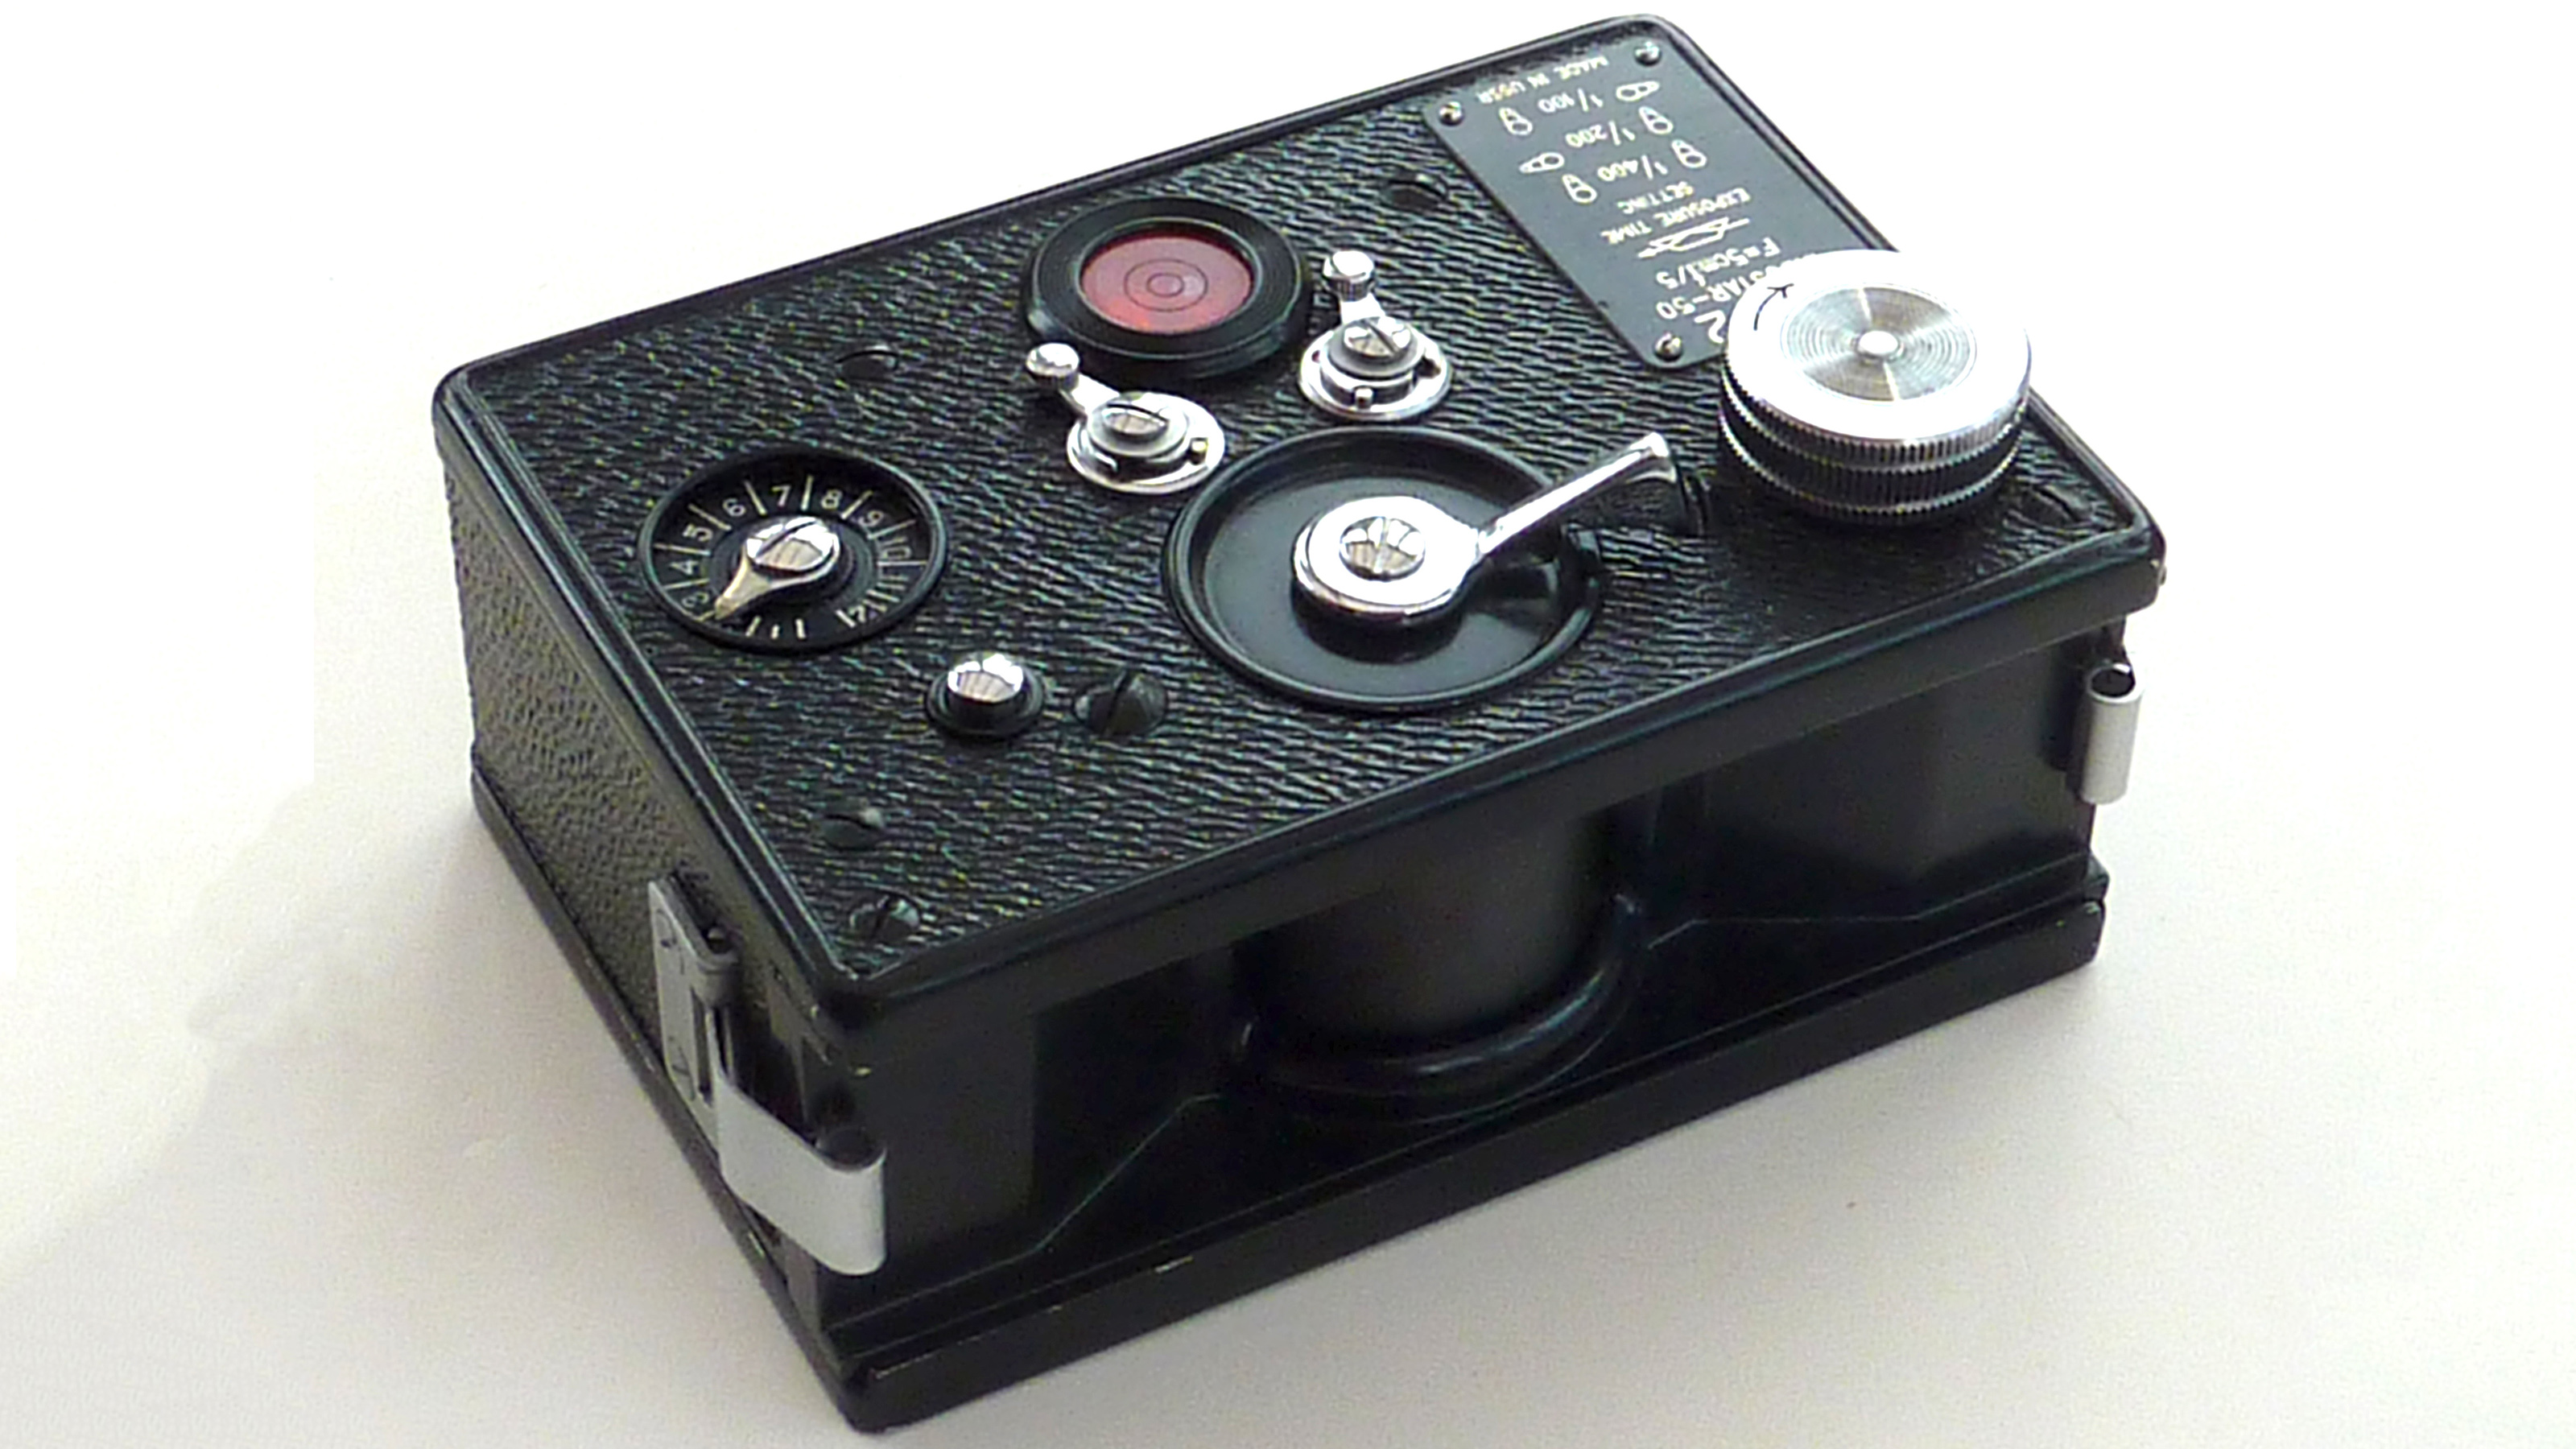 The top of the Kraznogorsk FT-2 camera